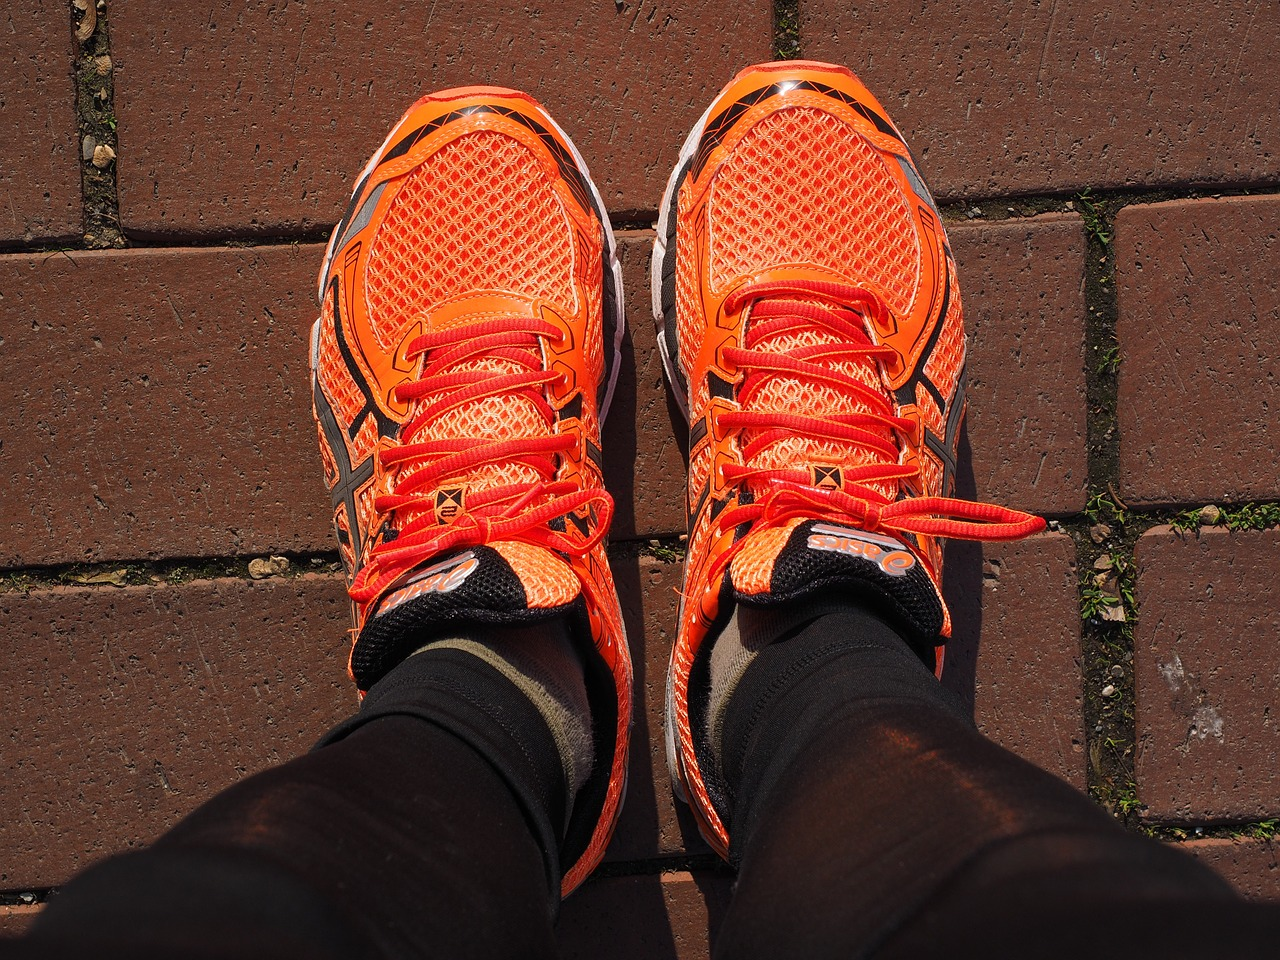 10,000 steps a day, orange shoes